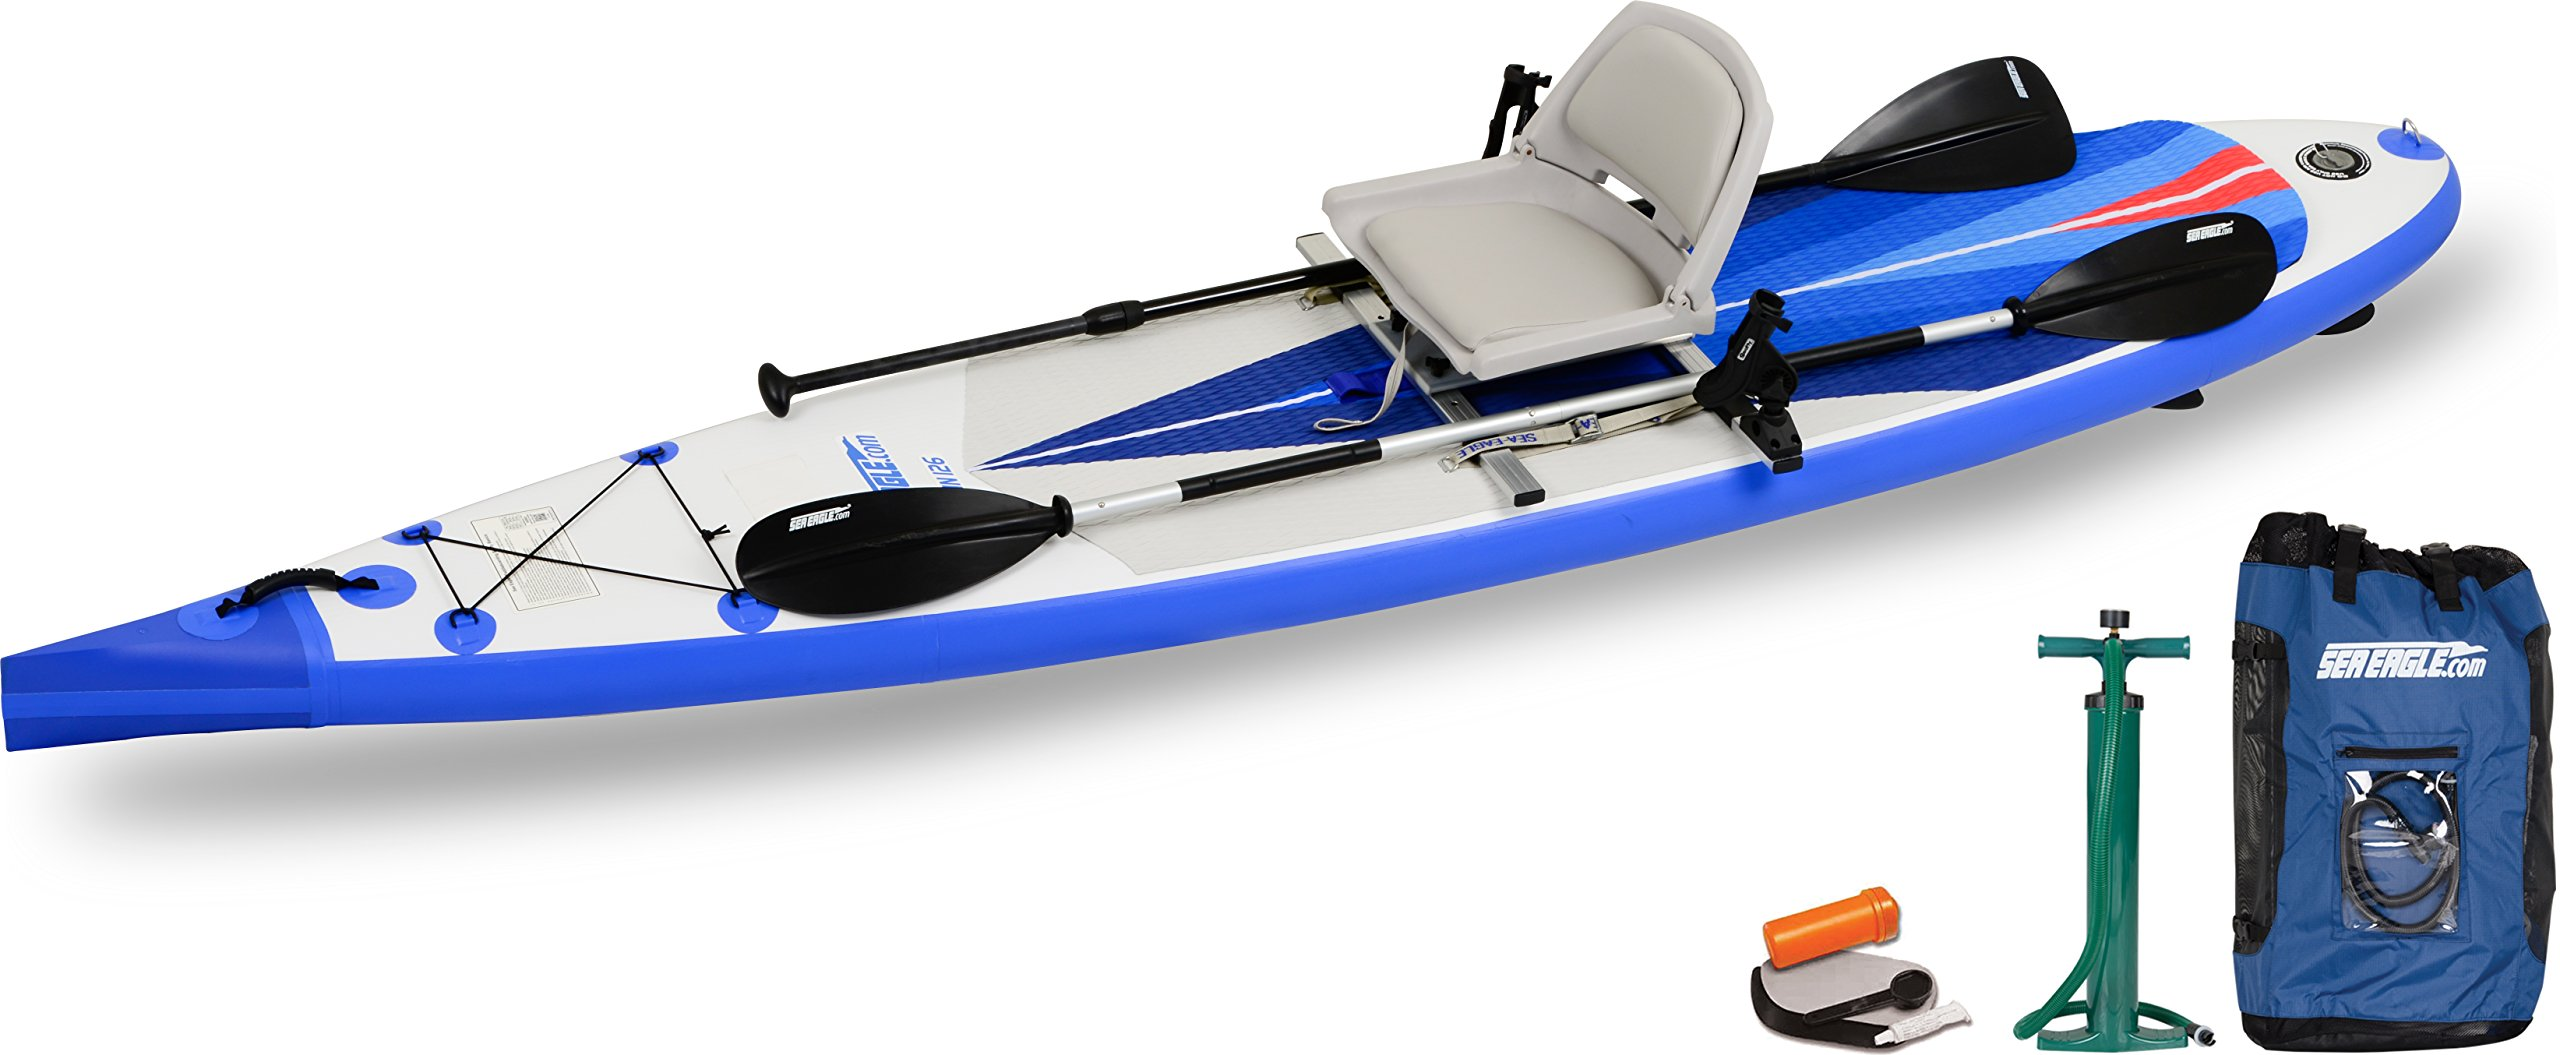 Sea Eagle NeedleNose NN126 Inflatable Touring SUP Swivel Seat Fishing Rig Package